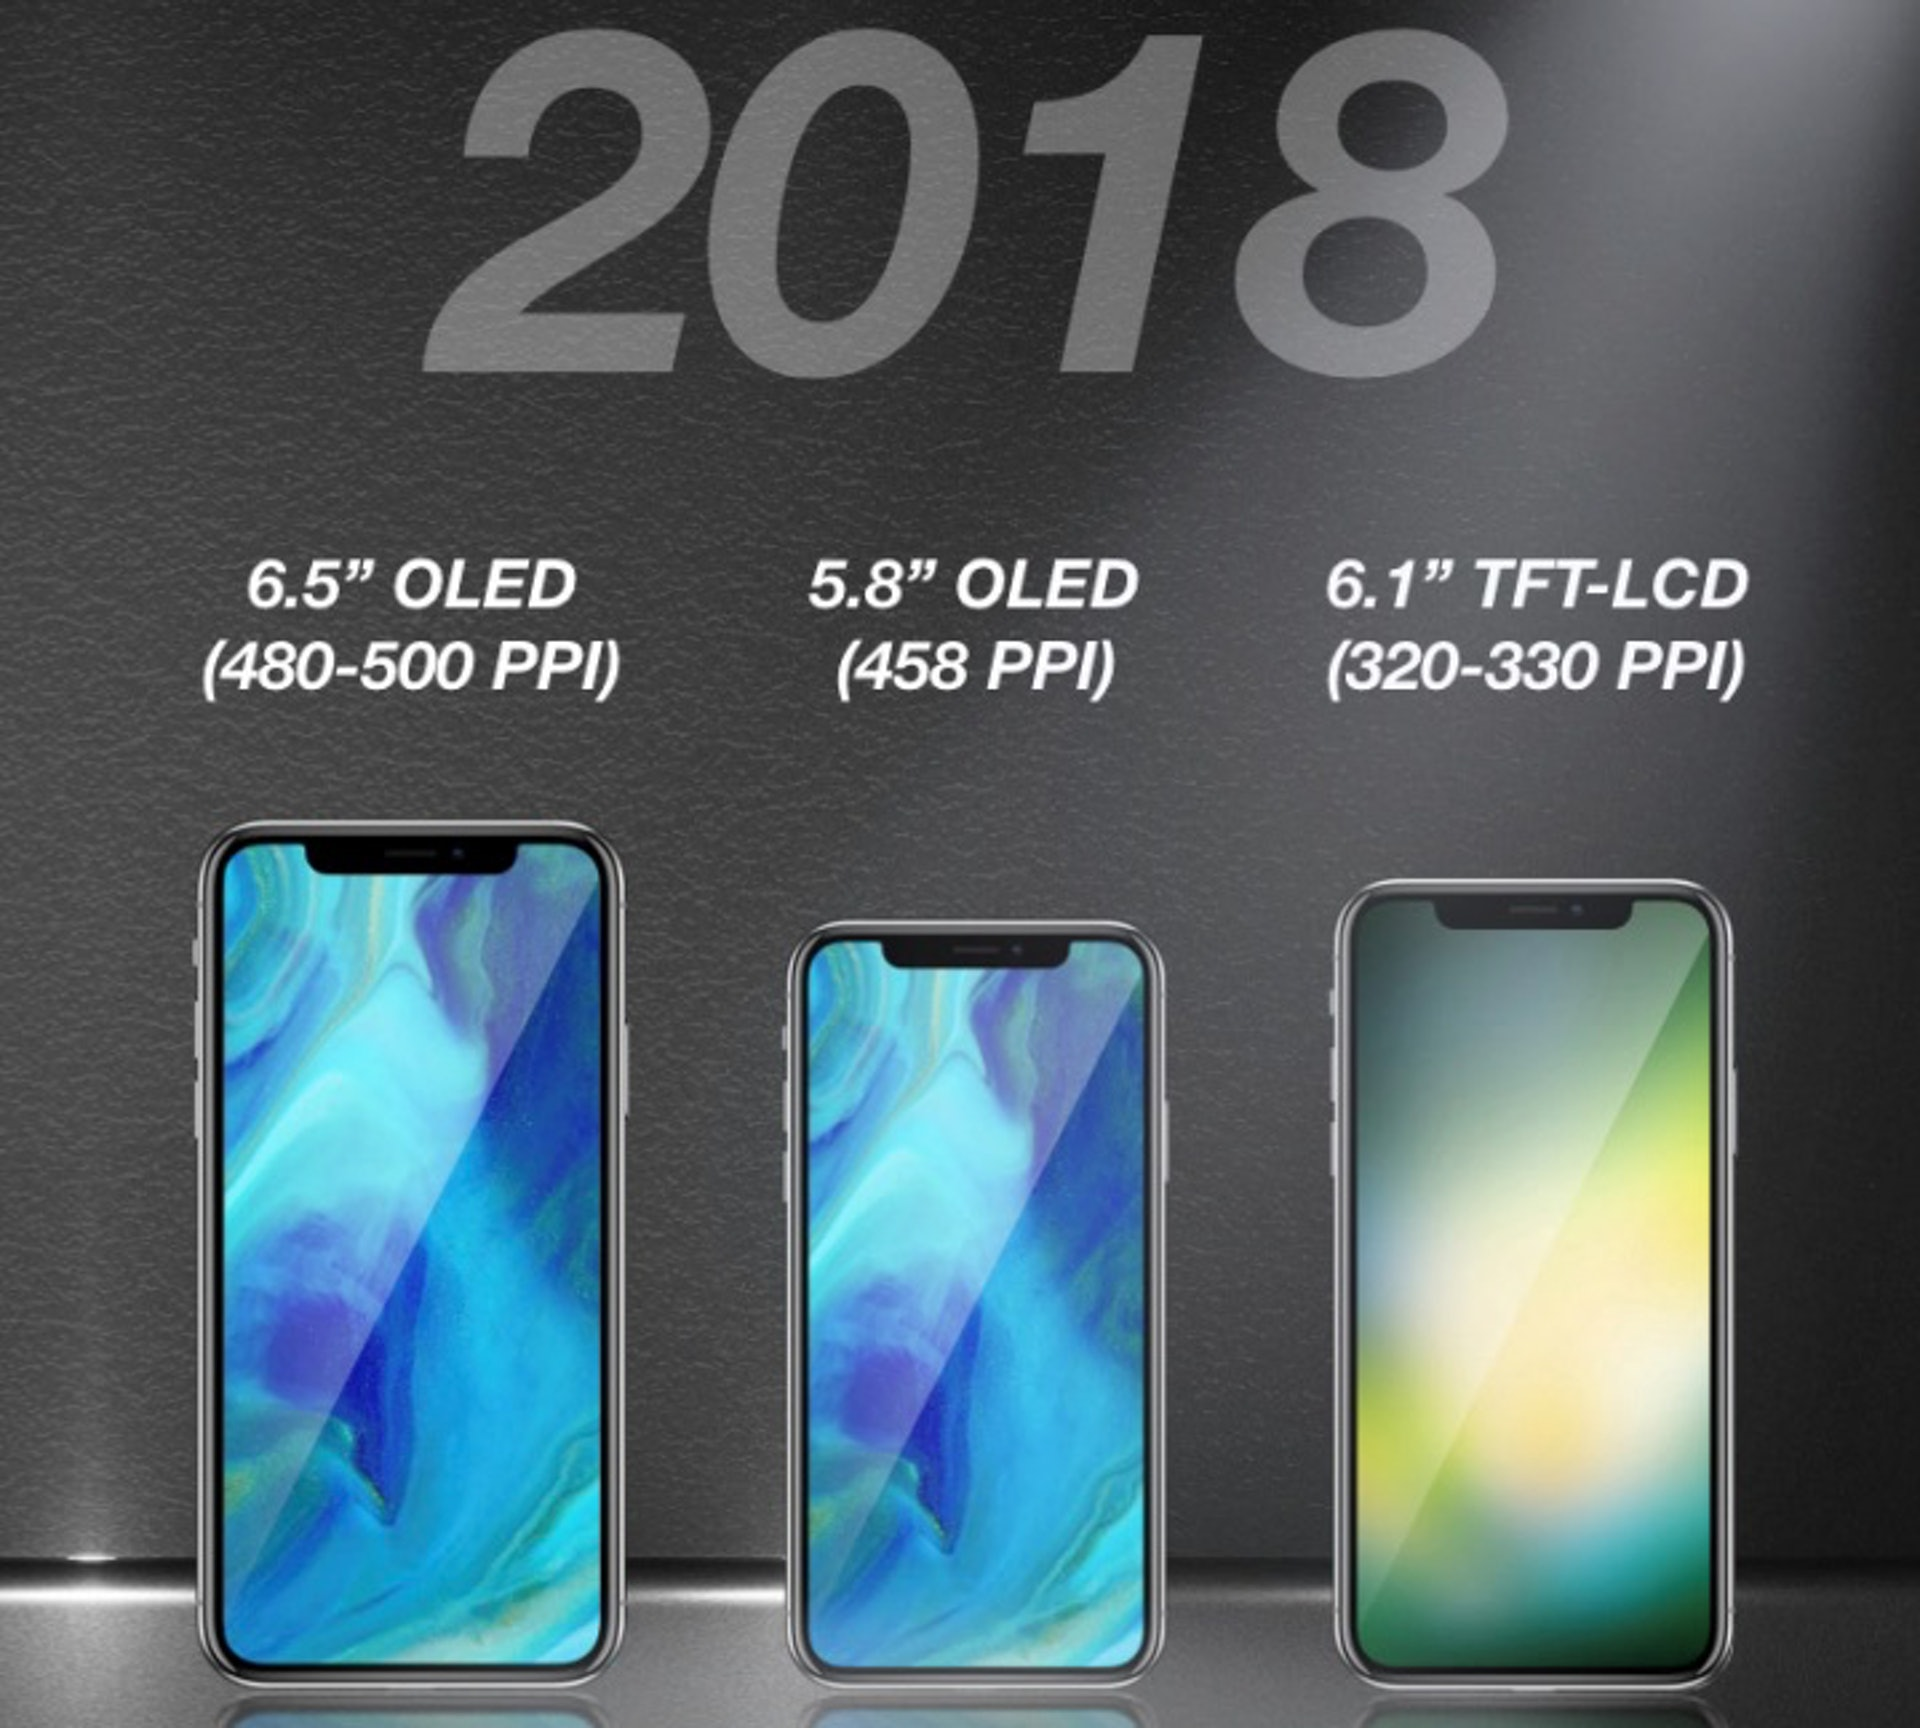 KGI Securities 2018 iPhone lineup: 6.1-inch LCD model, 5.8-inch OLED model and 6.5-inch OLED model